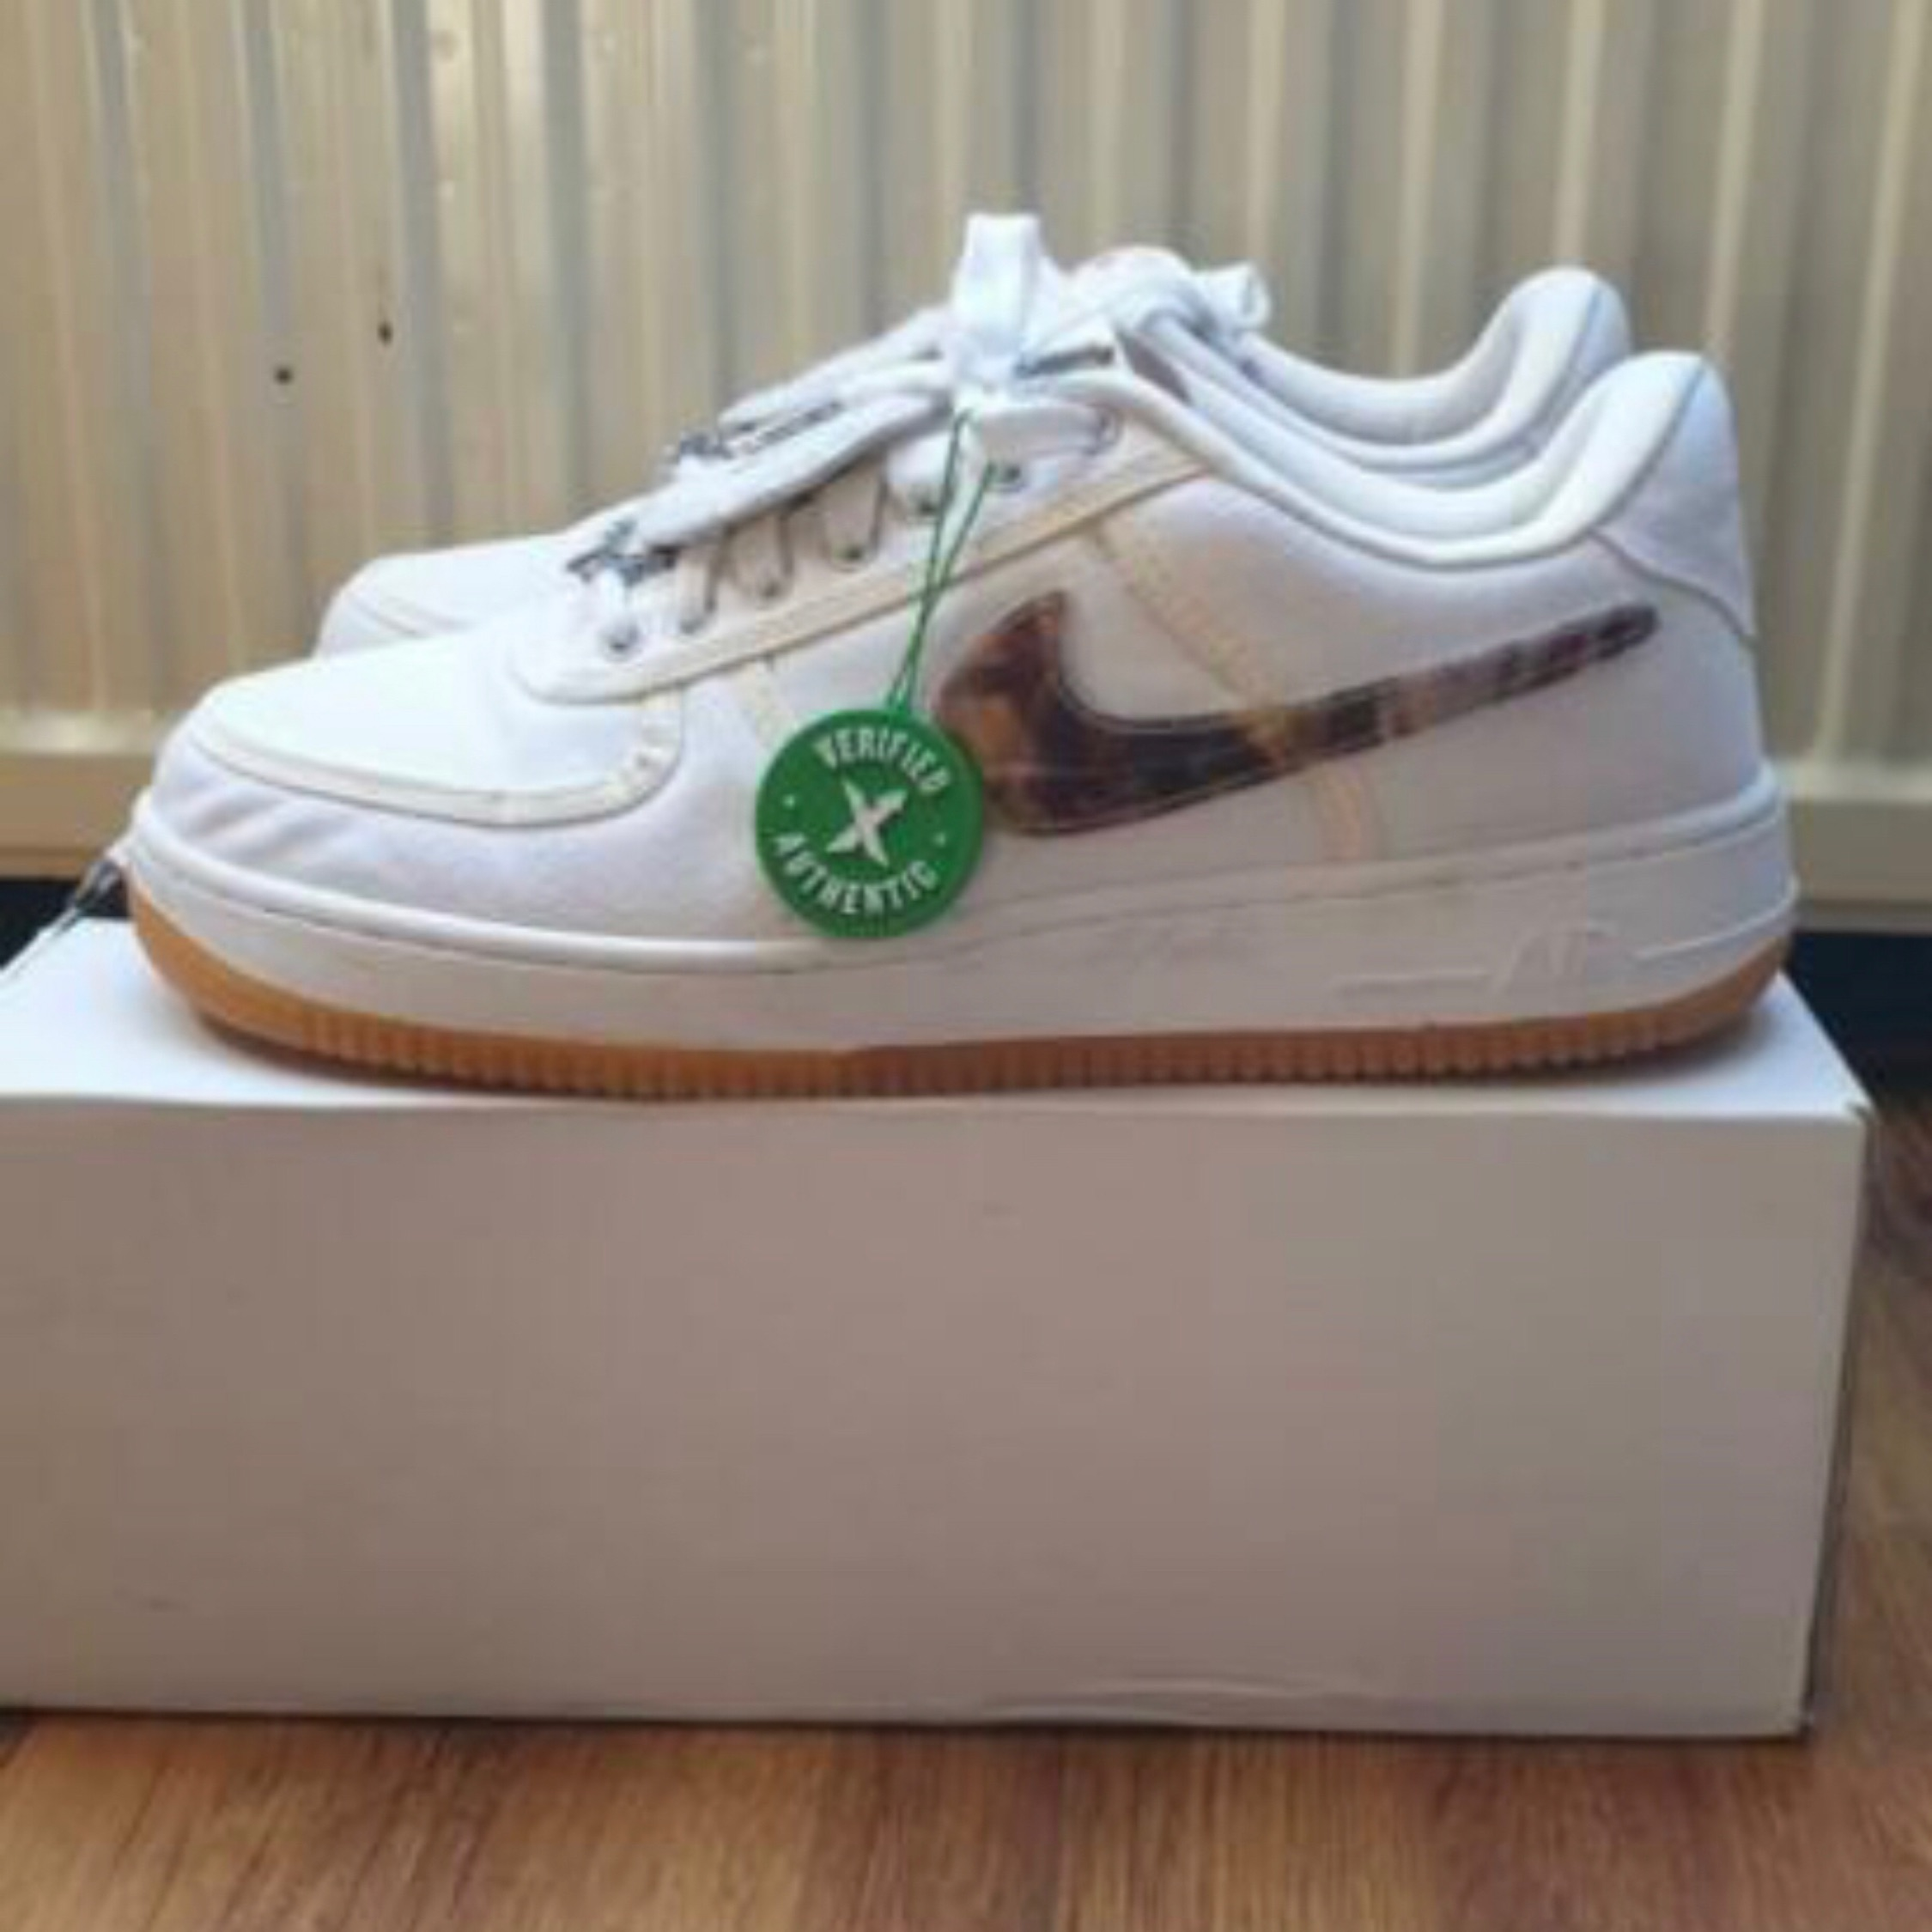 Travis Scott Air Force 1 (Sail) Us 11